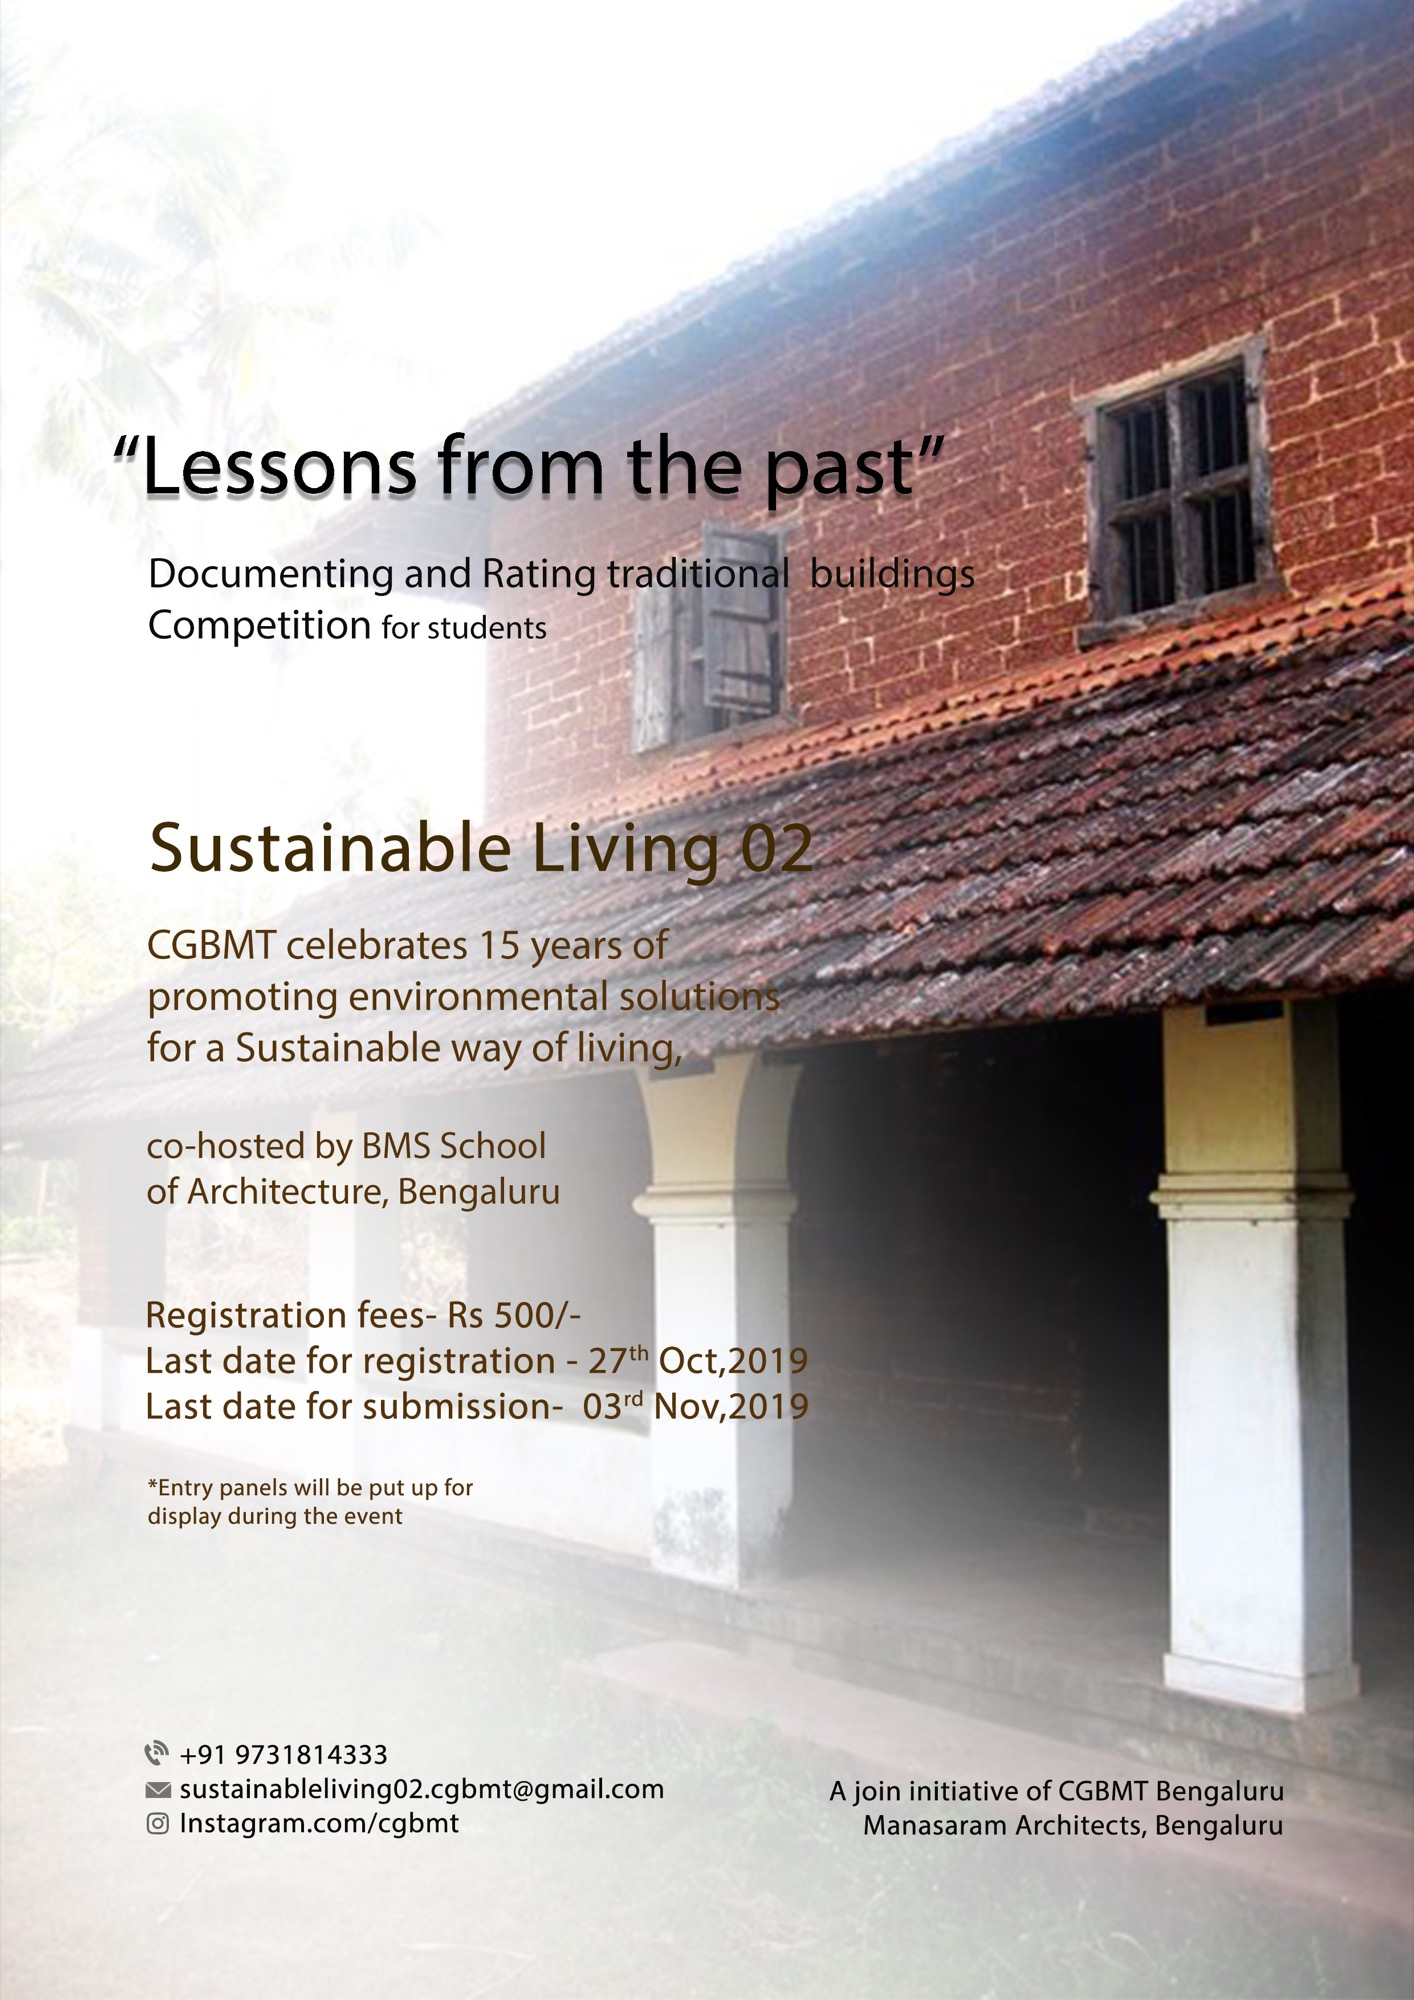 Sustainable Living-2, Event by Centre for Green Building Materials and Technology, Bangalore 19